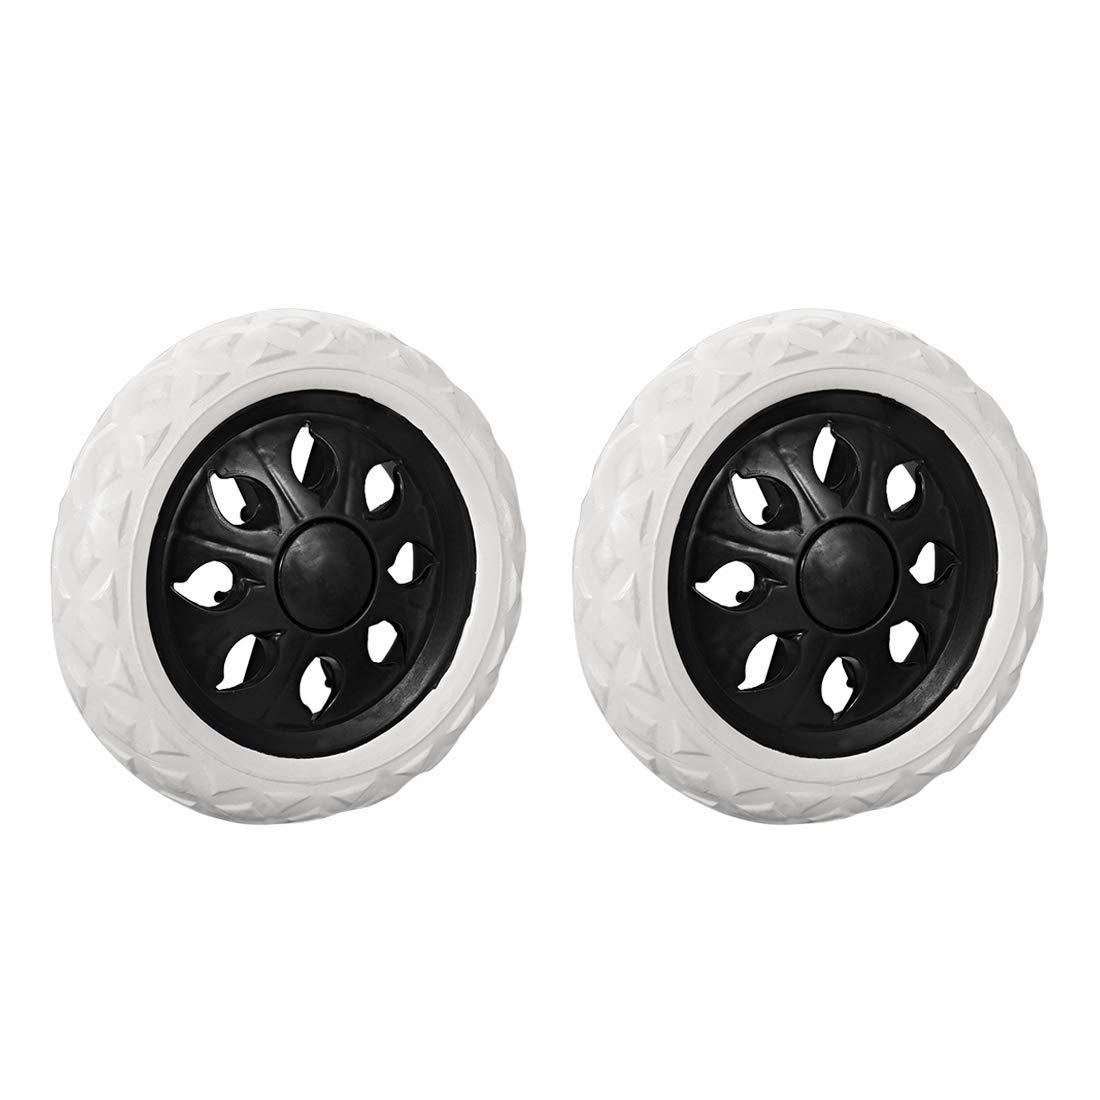 uxcell Shopping Cart Wheels Trolley Caster Replacement 6.5 Inch Dia Rubber Foaming Black 2pcs